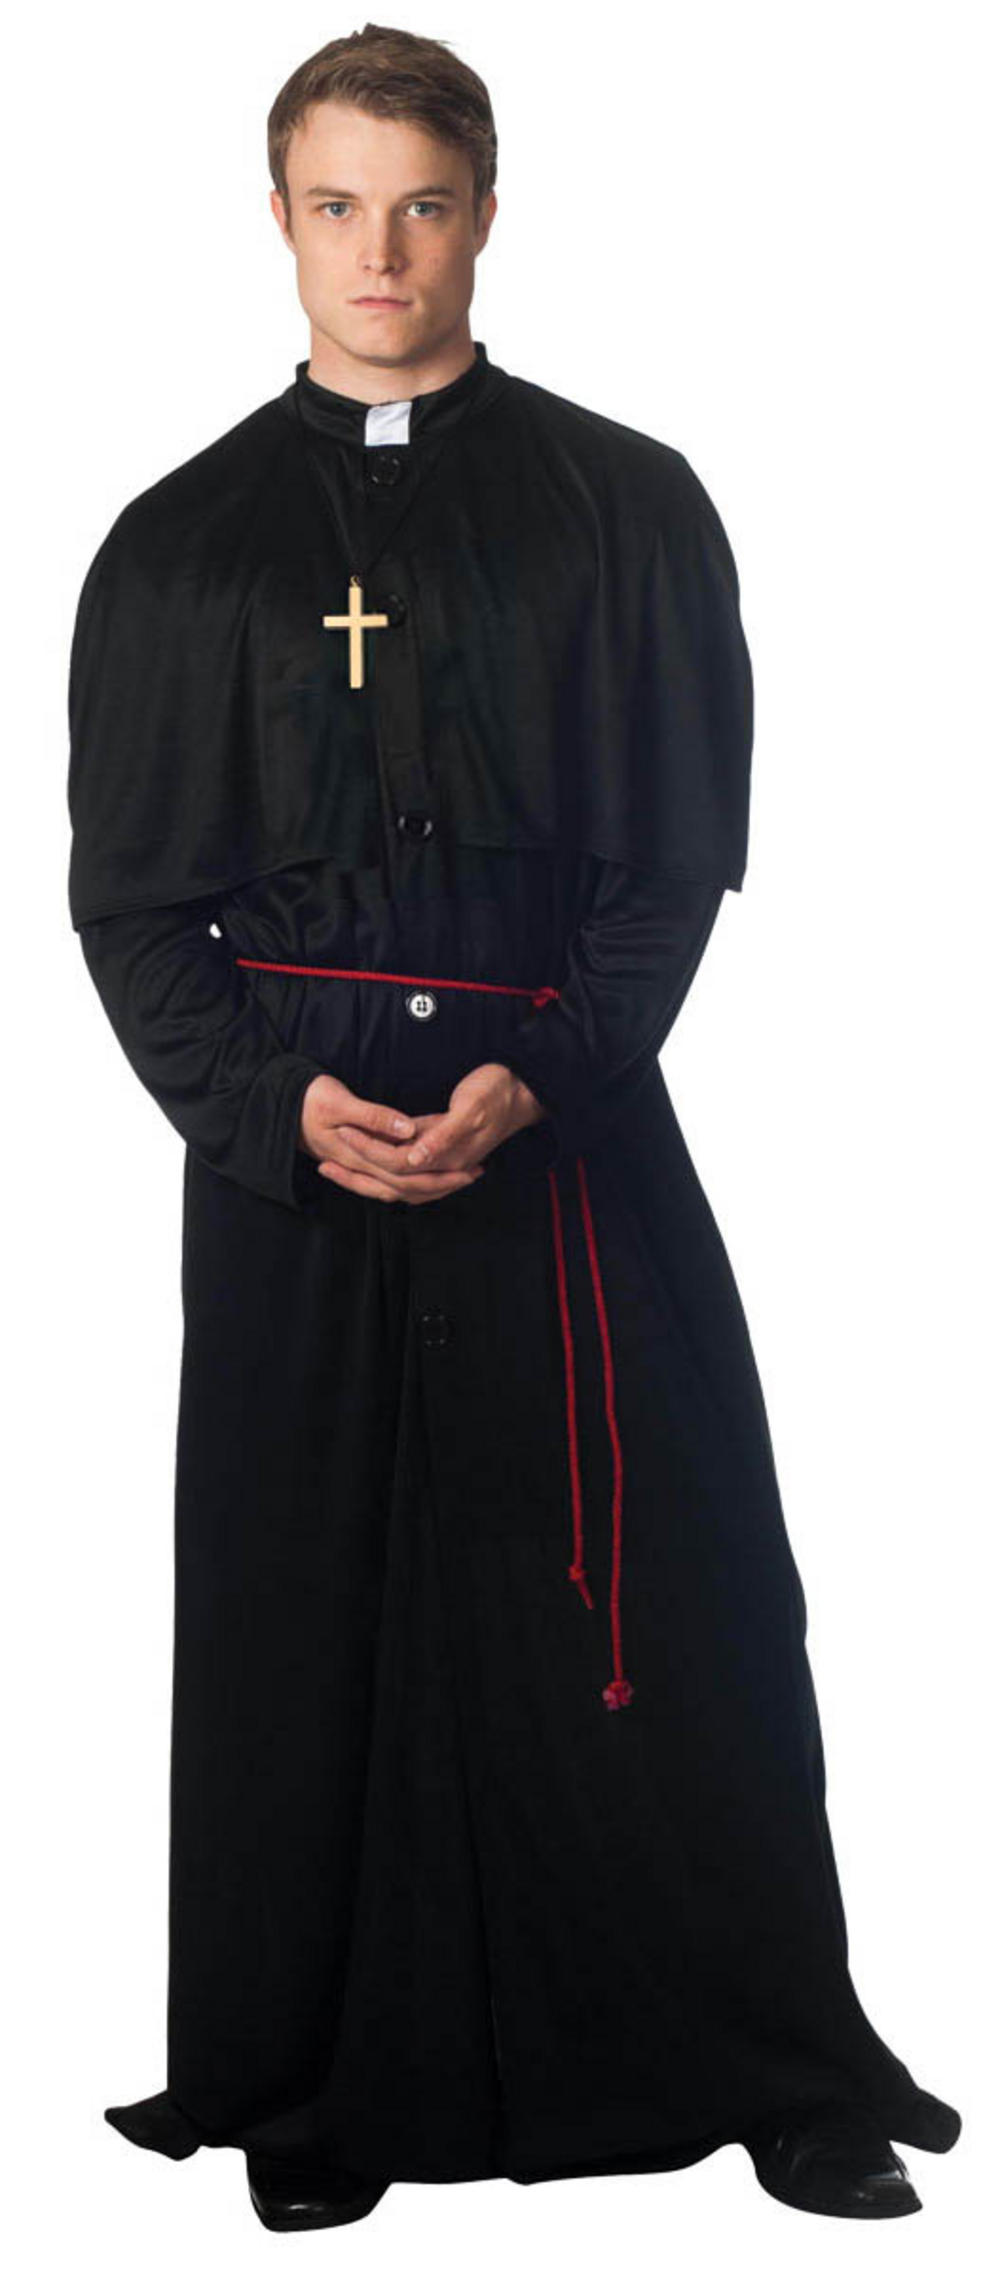 Men's Holy-er Than Thou Priest Fancy Dress Costume